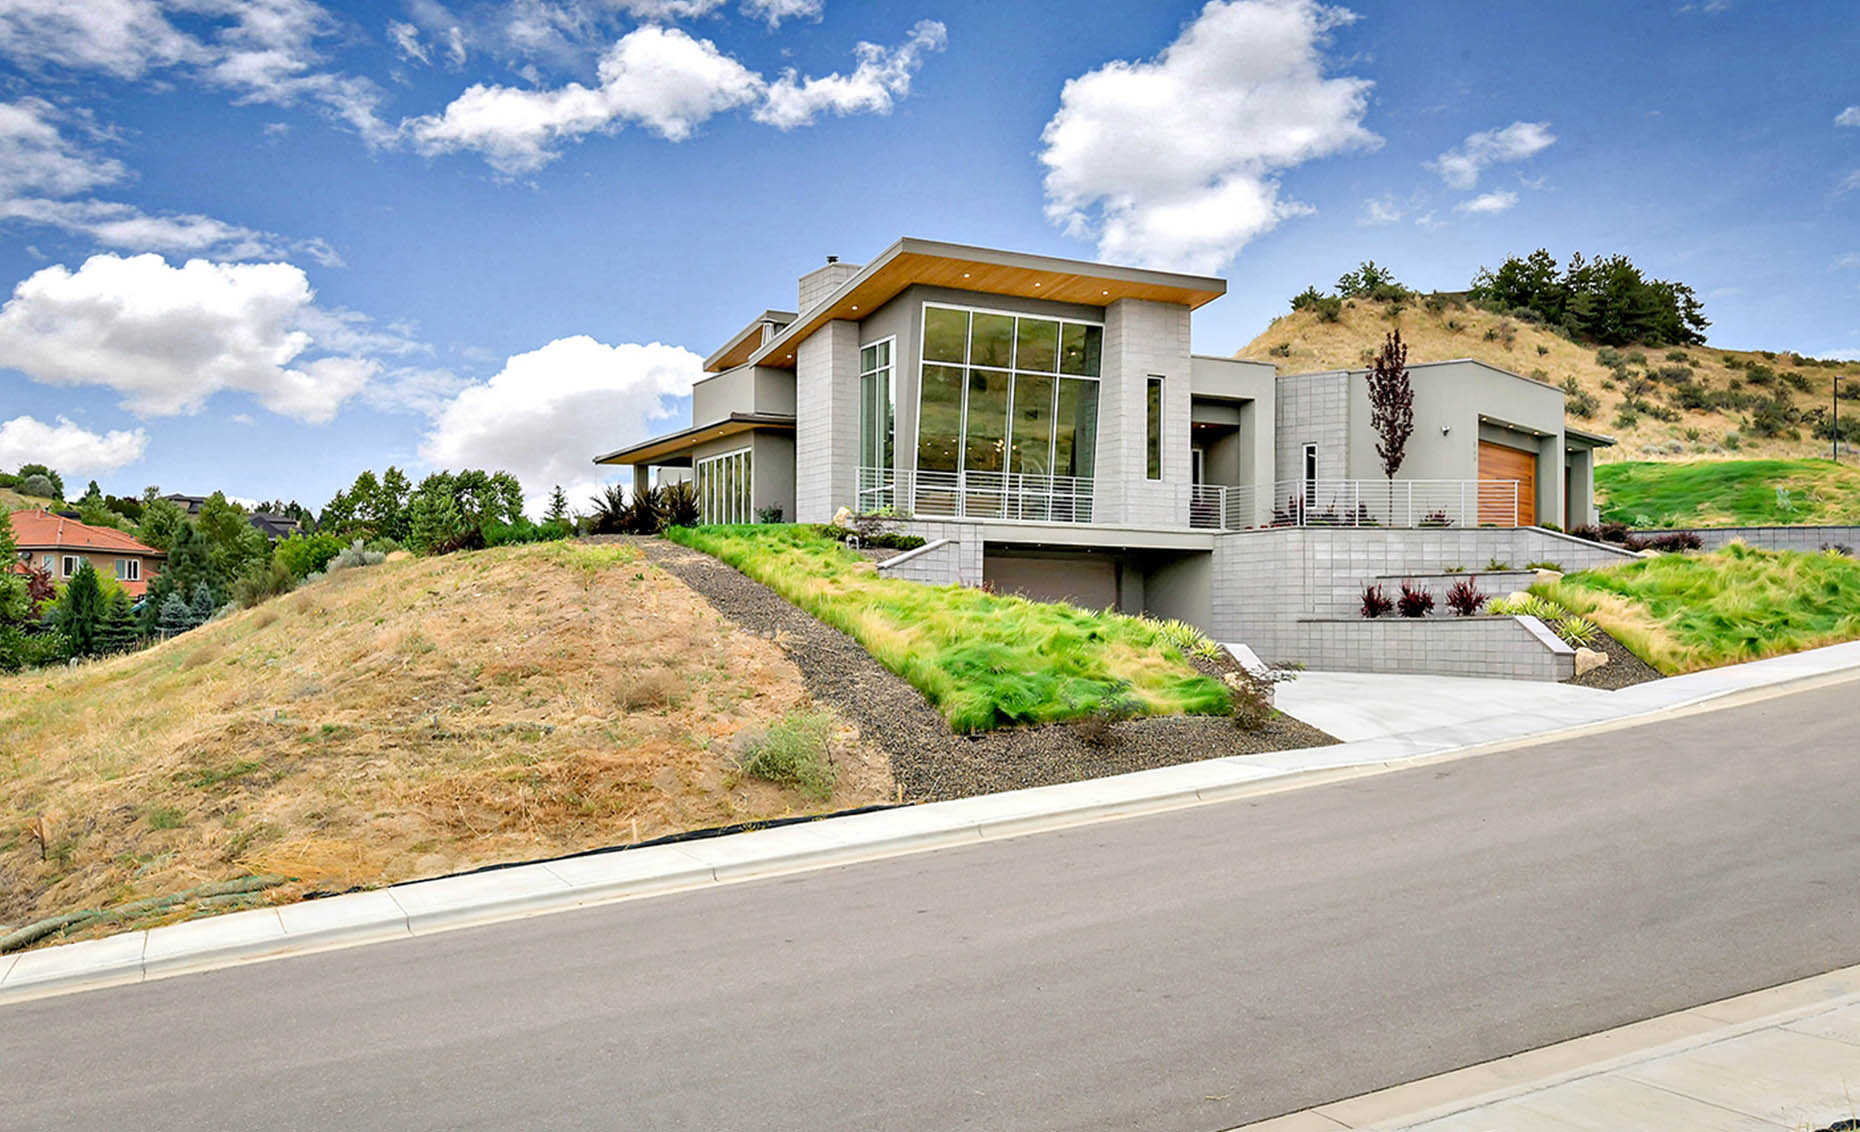 The Nature View Custom Home Exterior Street View